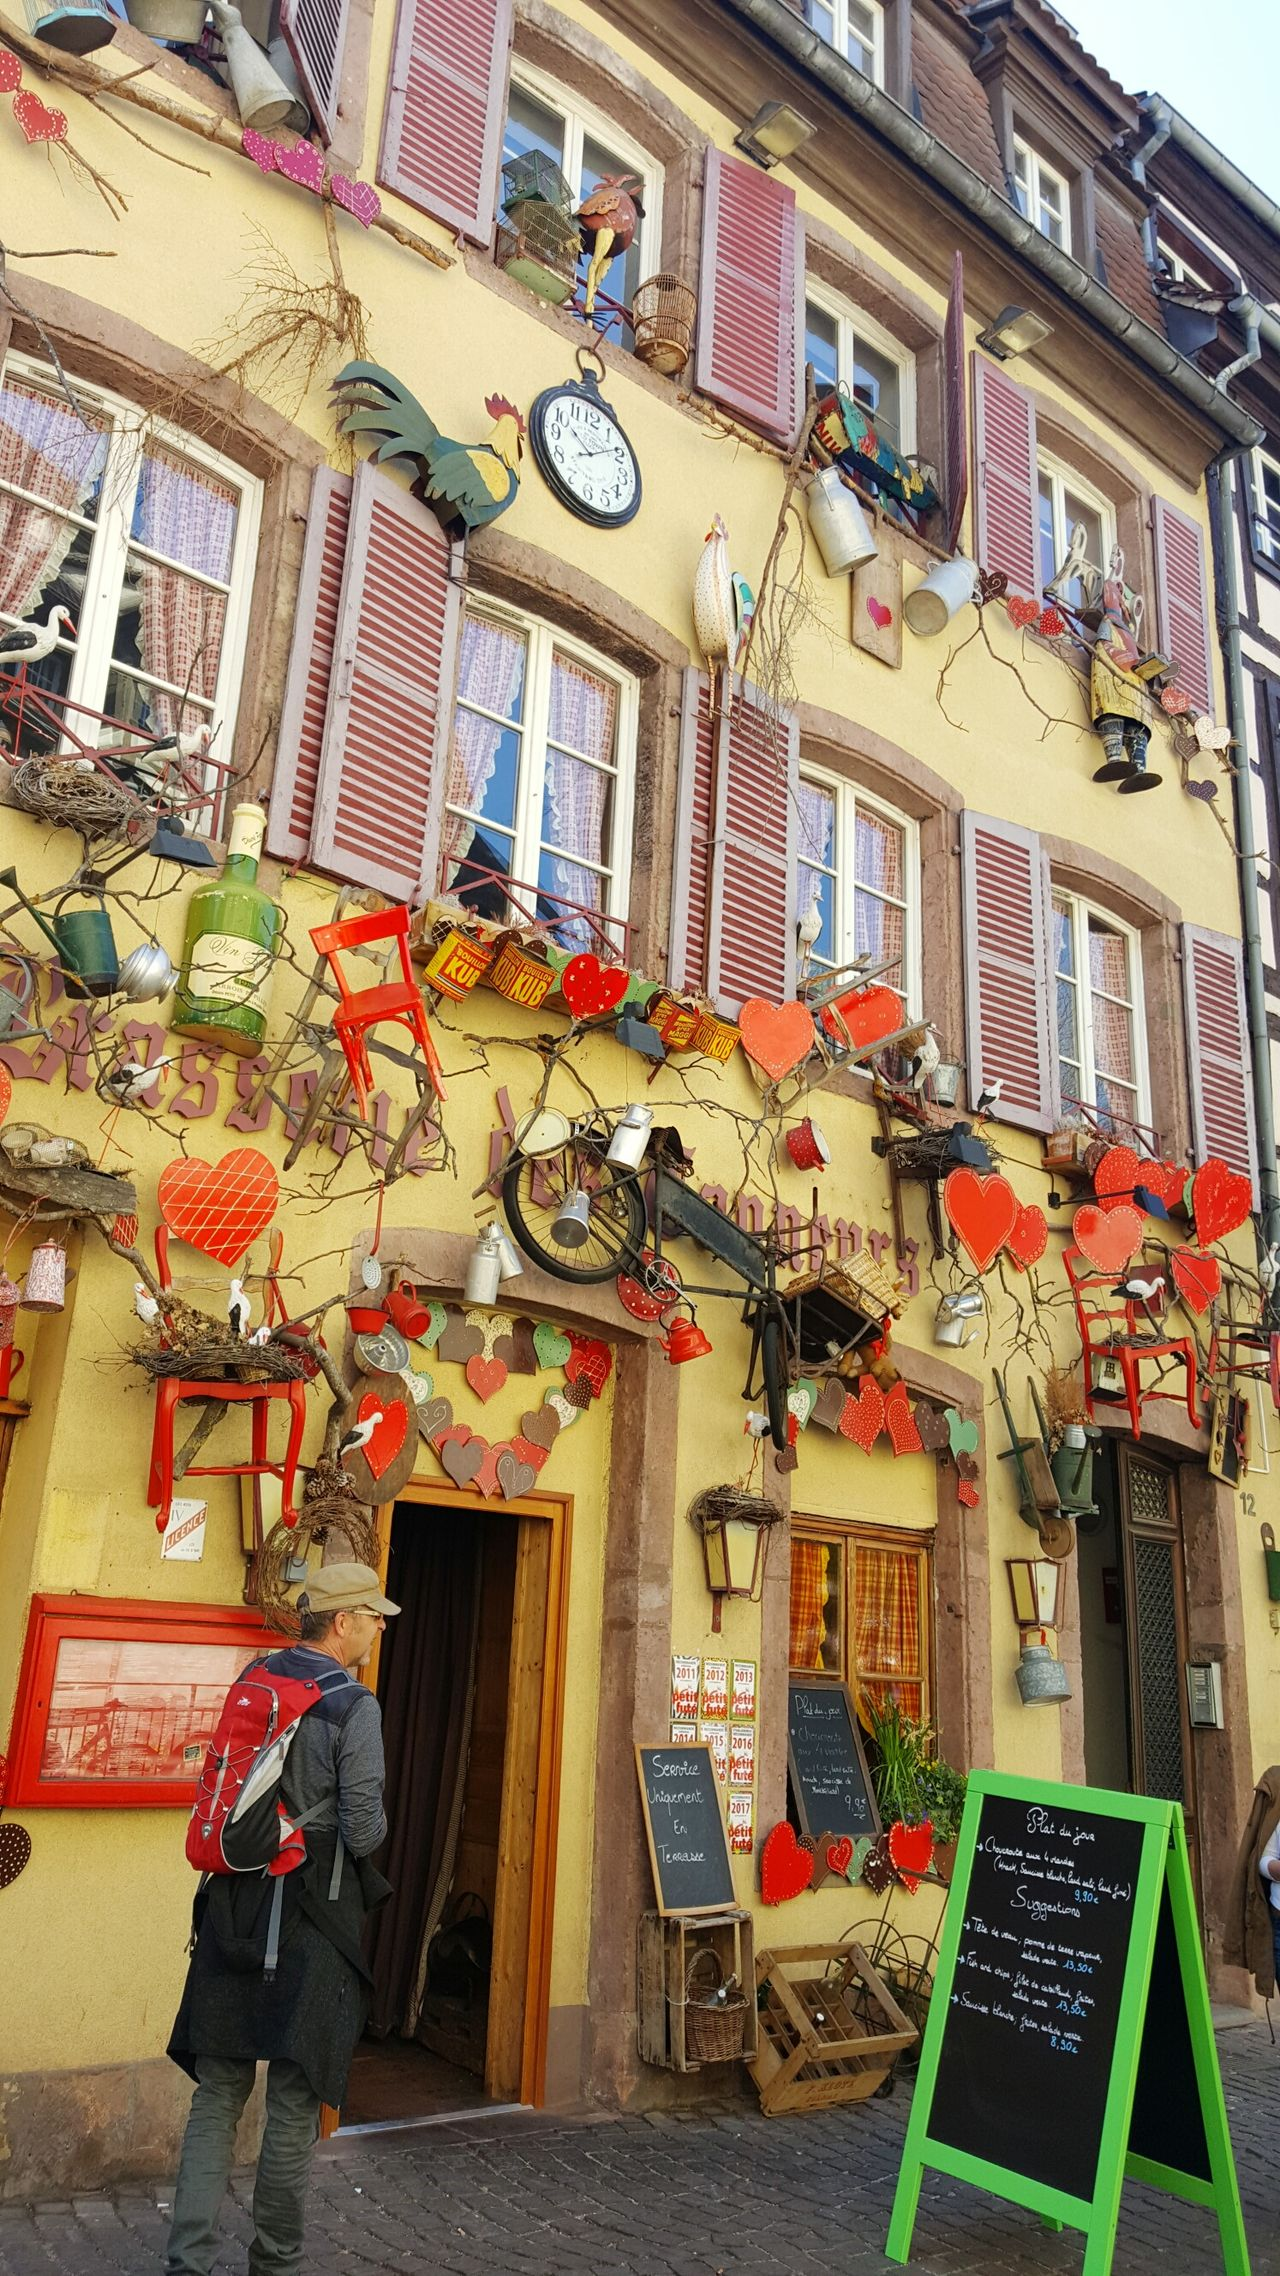 Architecture Built Structure Building Exterior Multi Colored City Abstract Abstract Art Art ArtWork Outdoors Travel Destinations Colmar, Alsace, France